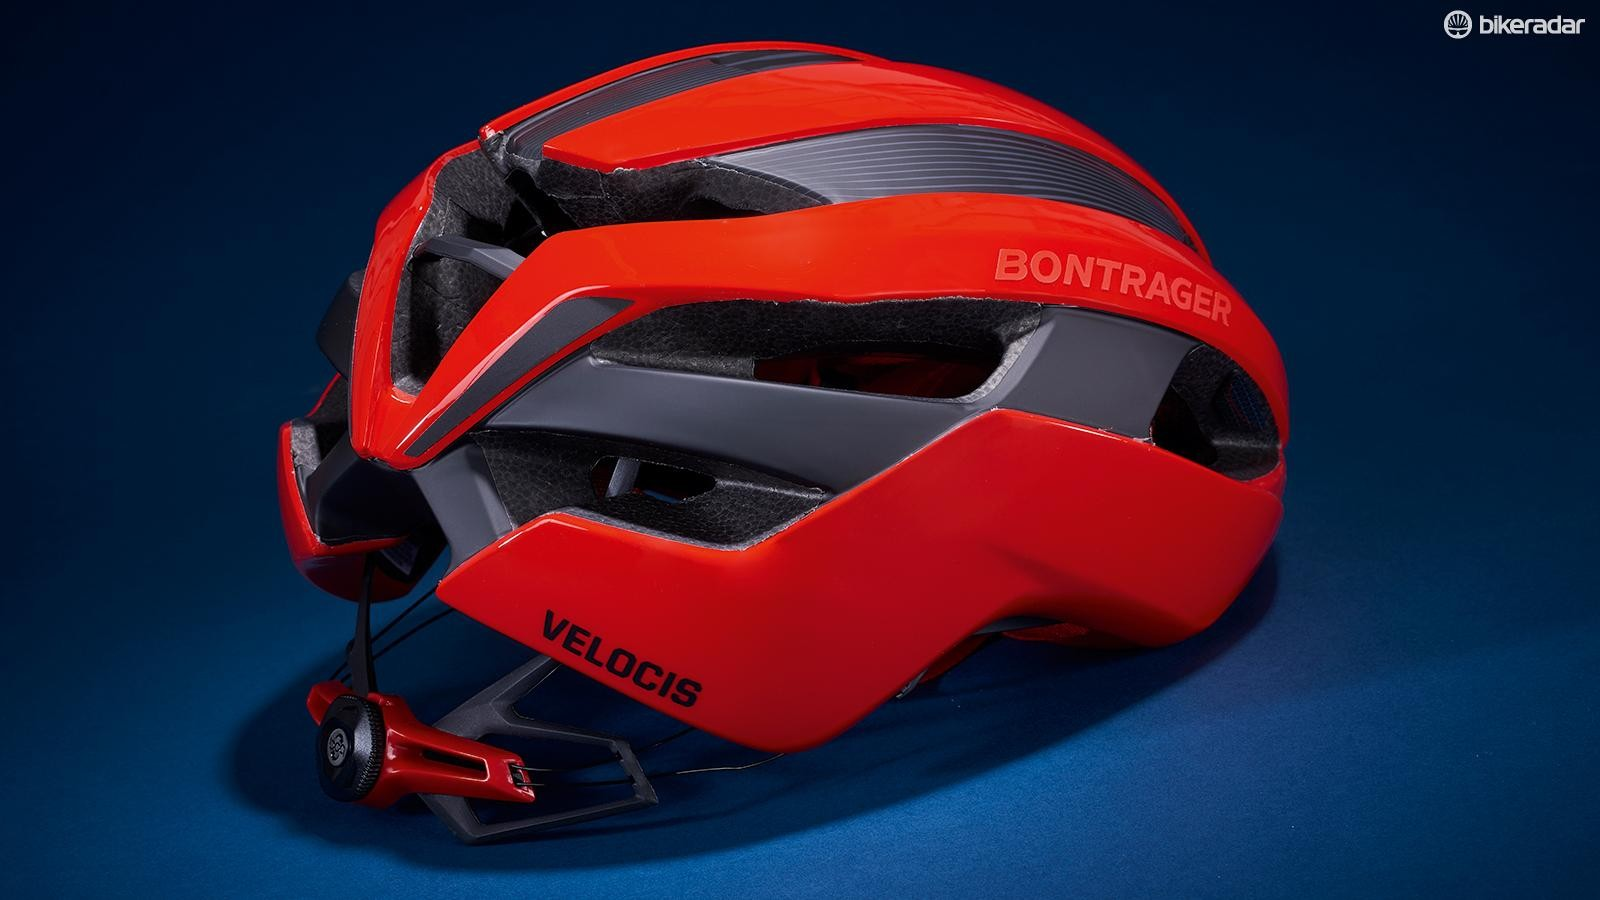 Bontrager's Velocis MIPS is the brand's latest well-vented option